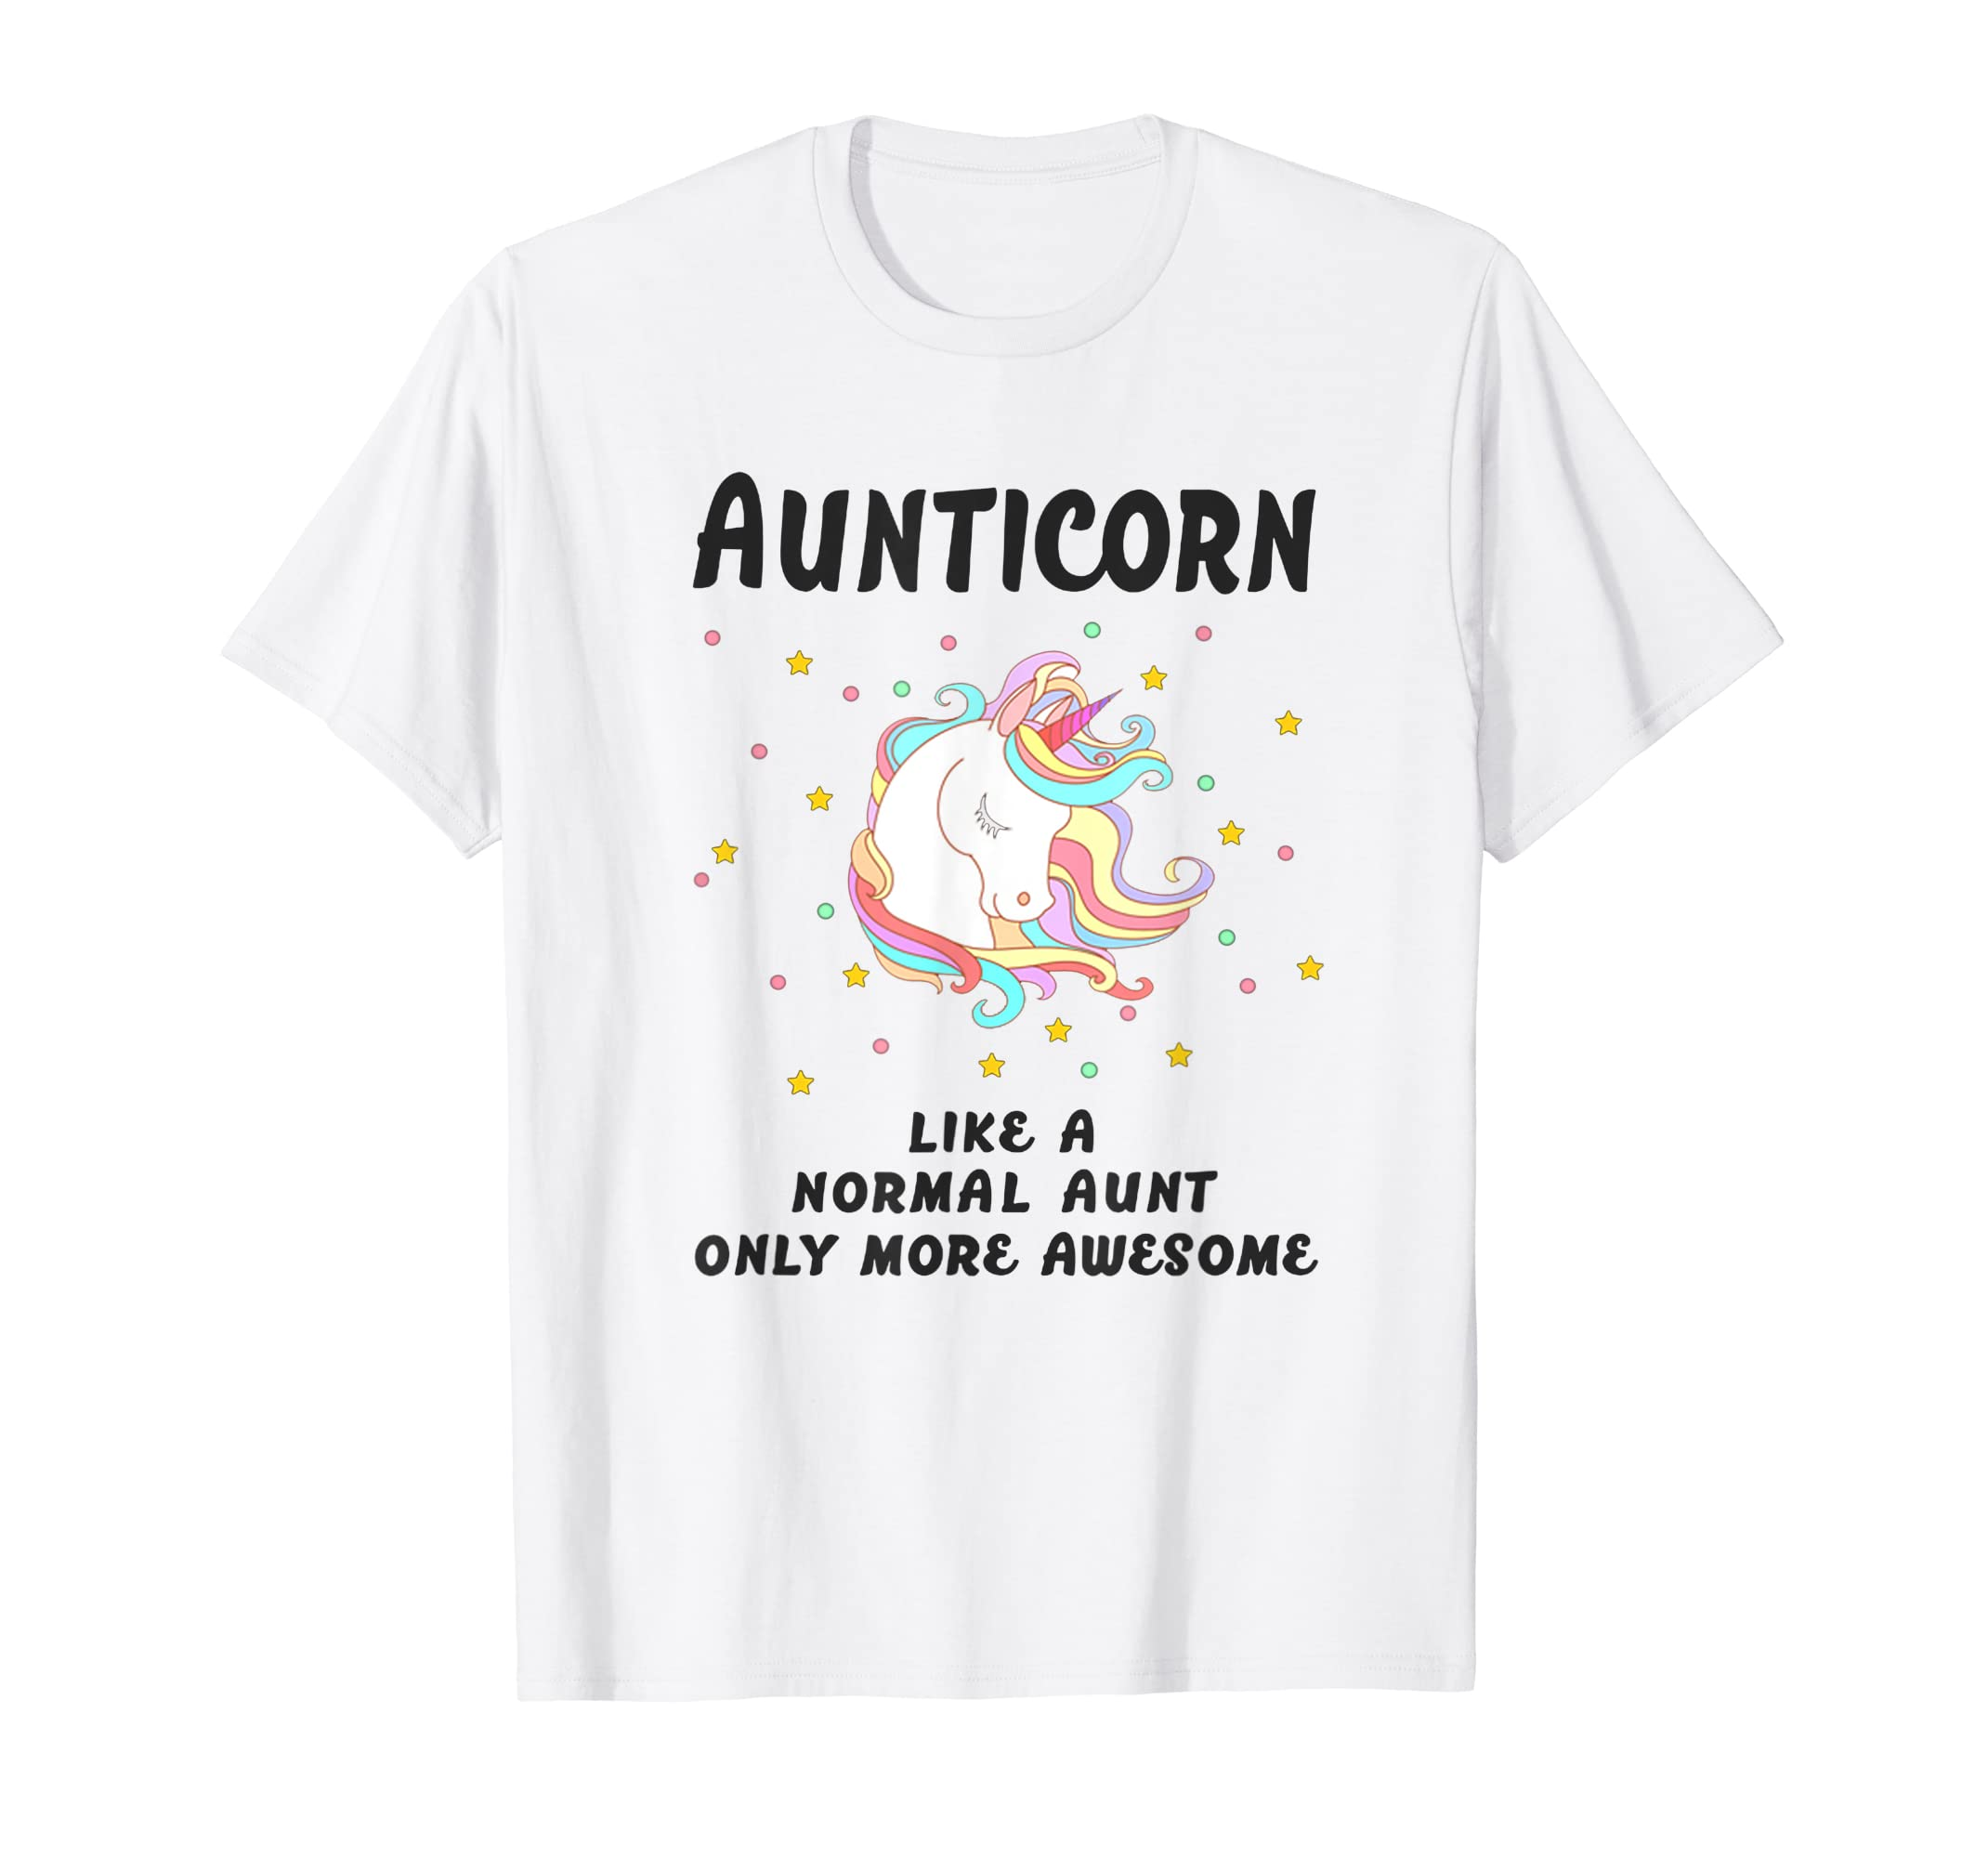 db40b12db Amazon.com: Aunticorn Like A Normal Aunt Only More Awesome Tshirt: Clothing